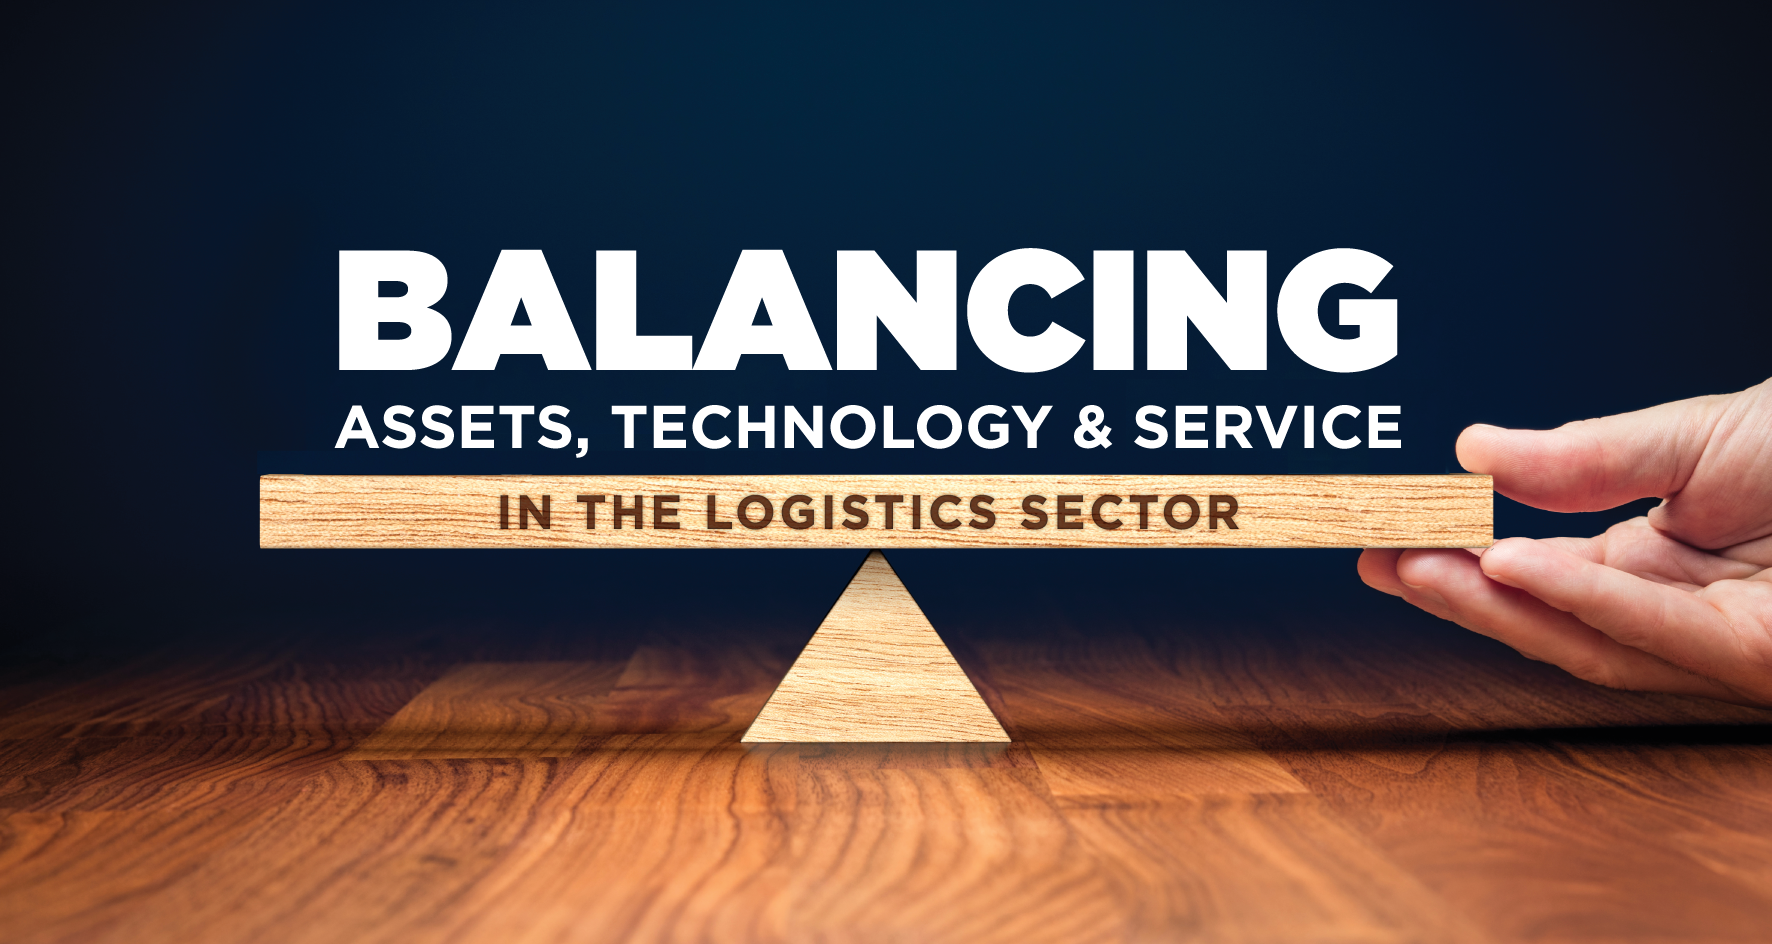 balancing assets technology and service in the logistics sector